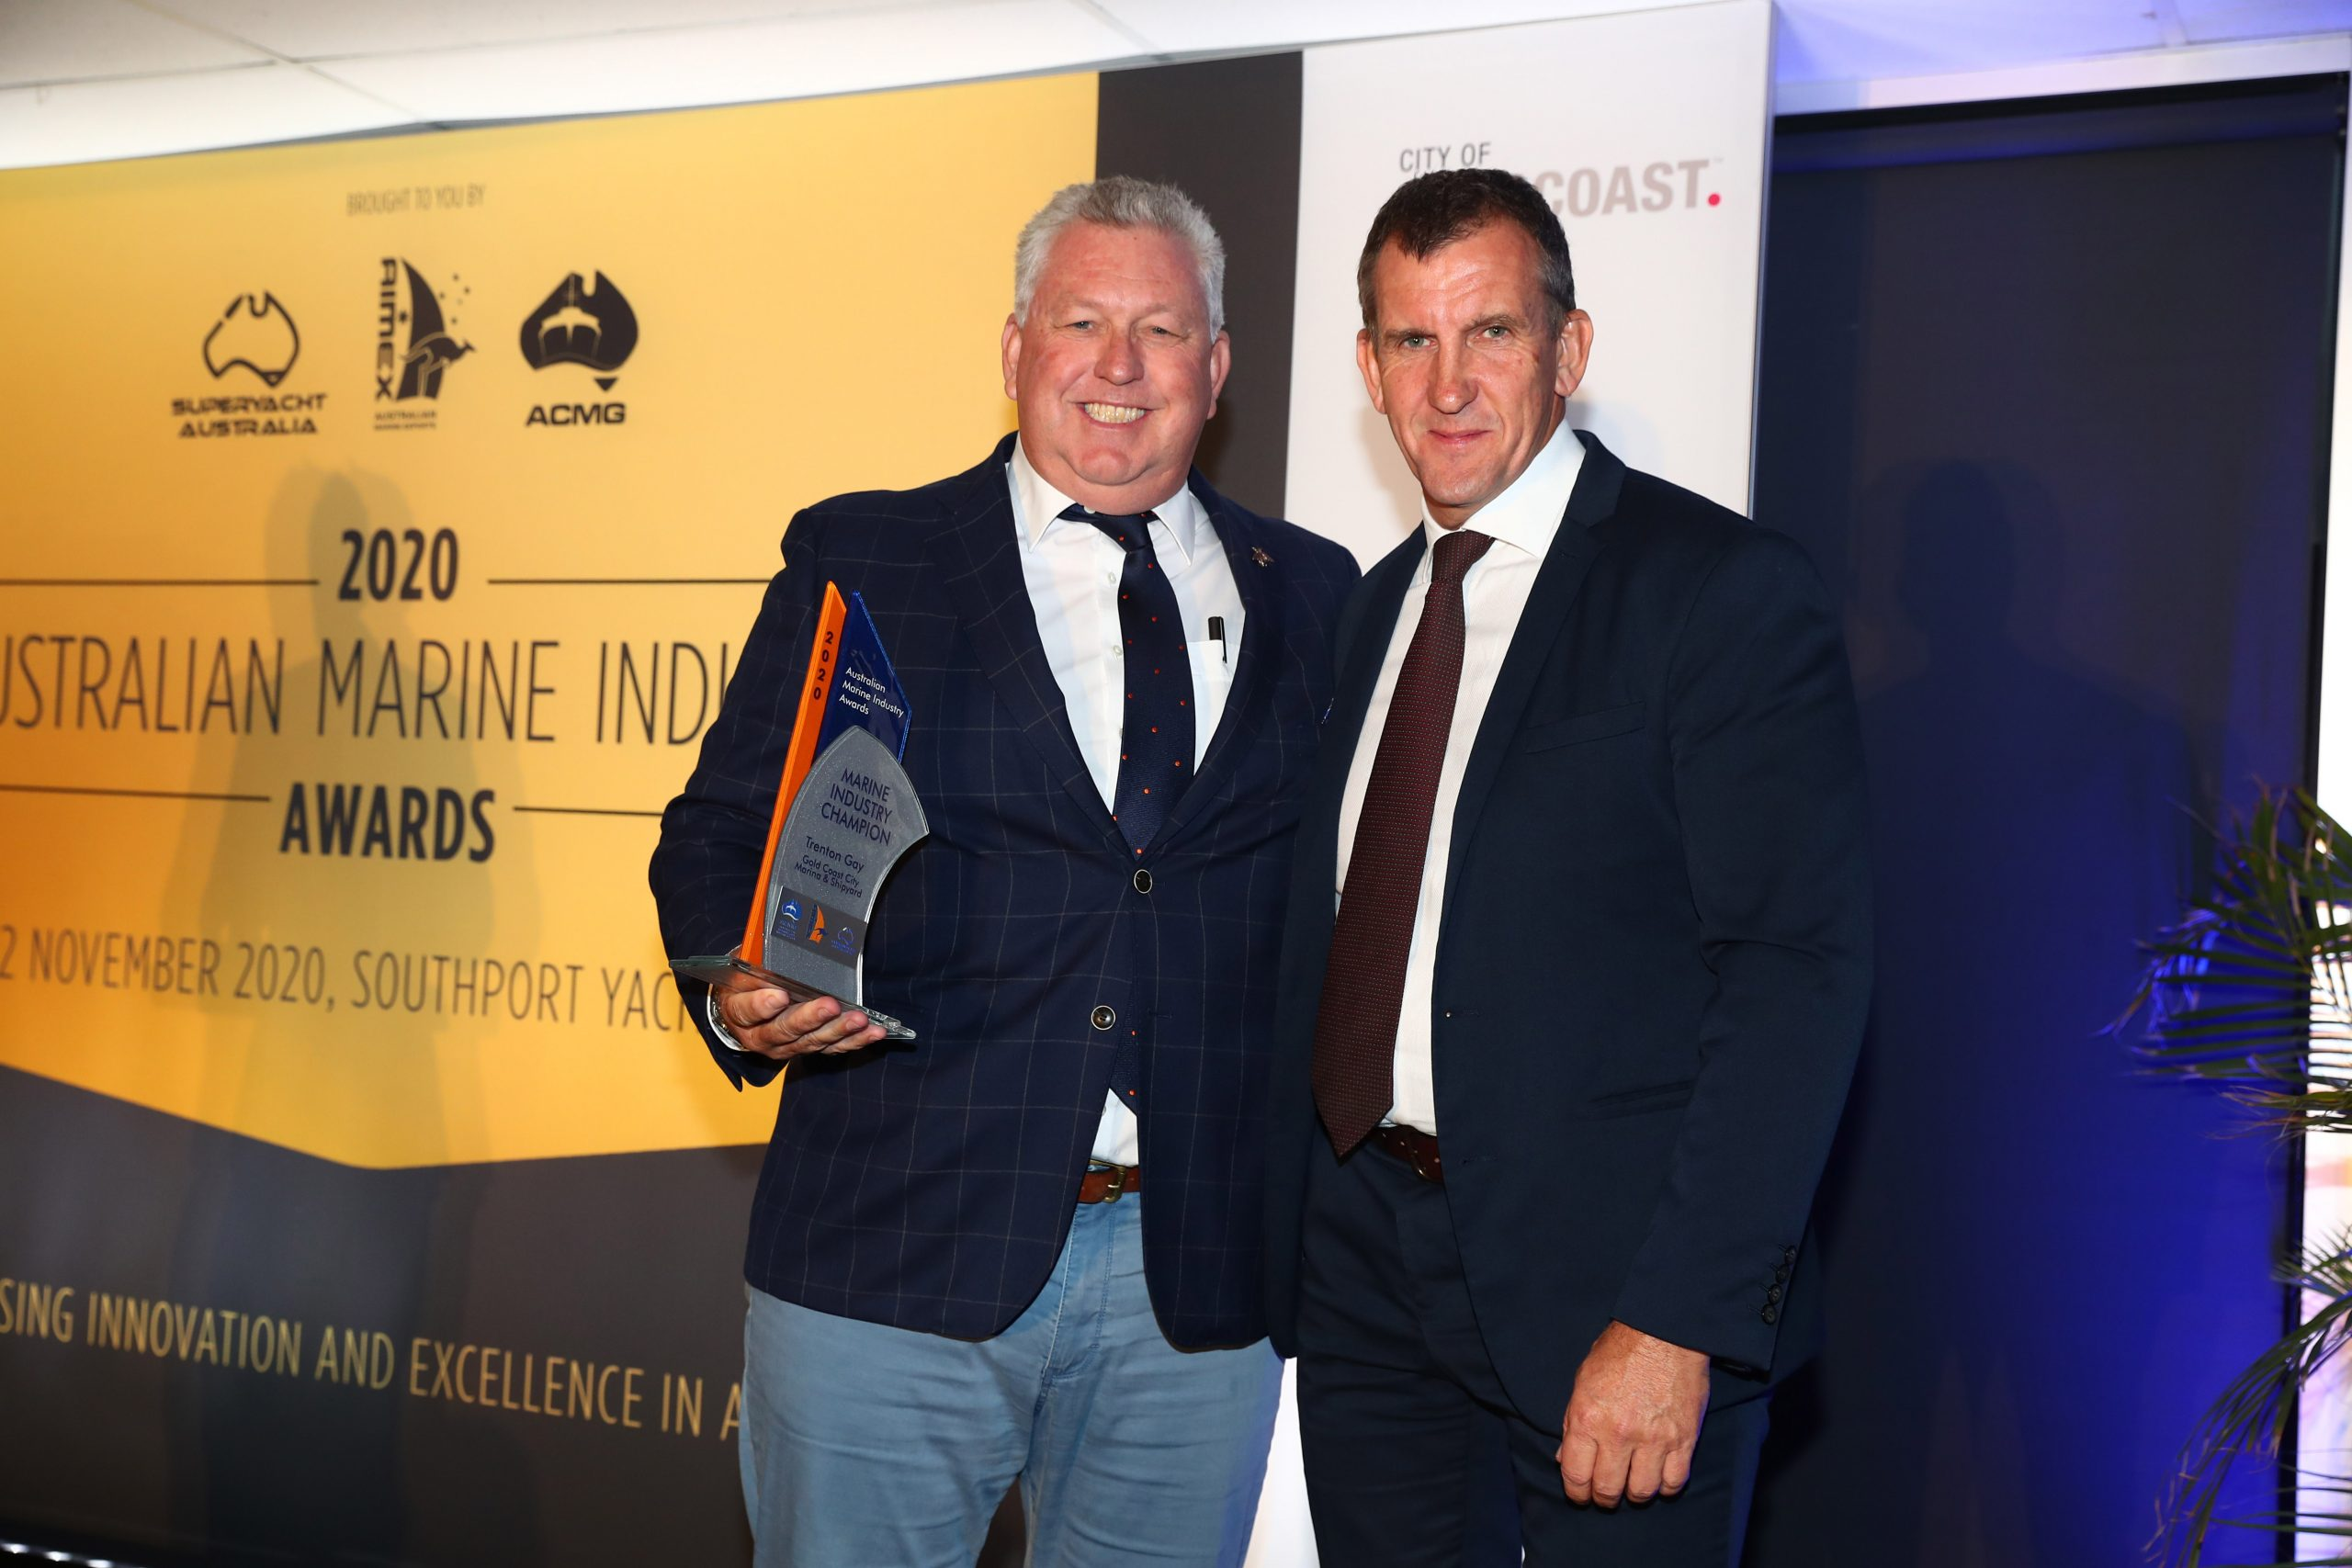 16. Marine Industry Champion Trent Gay – GCCM and Presenting Partner Stephen Joyce from the City of Gold Coast